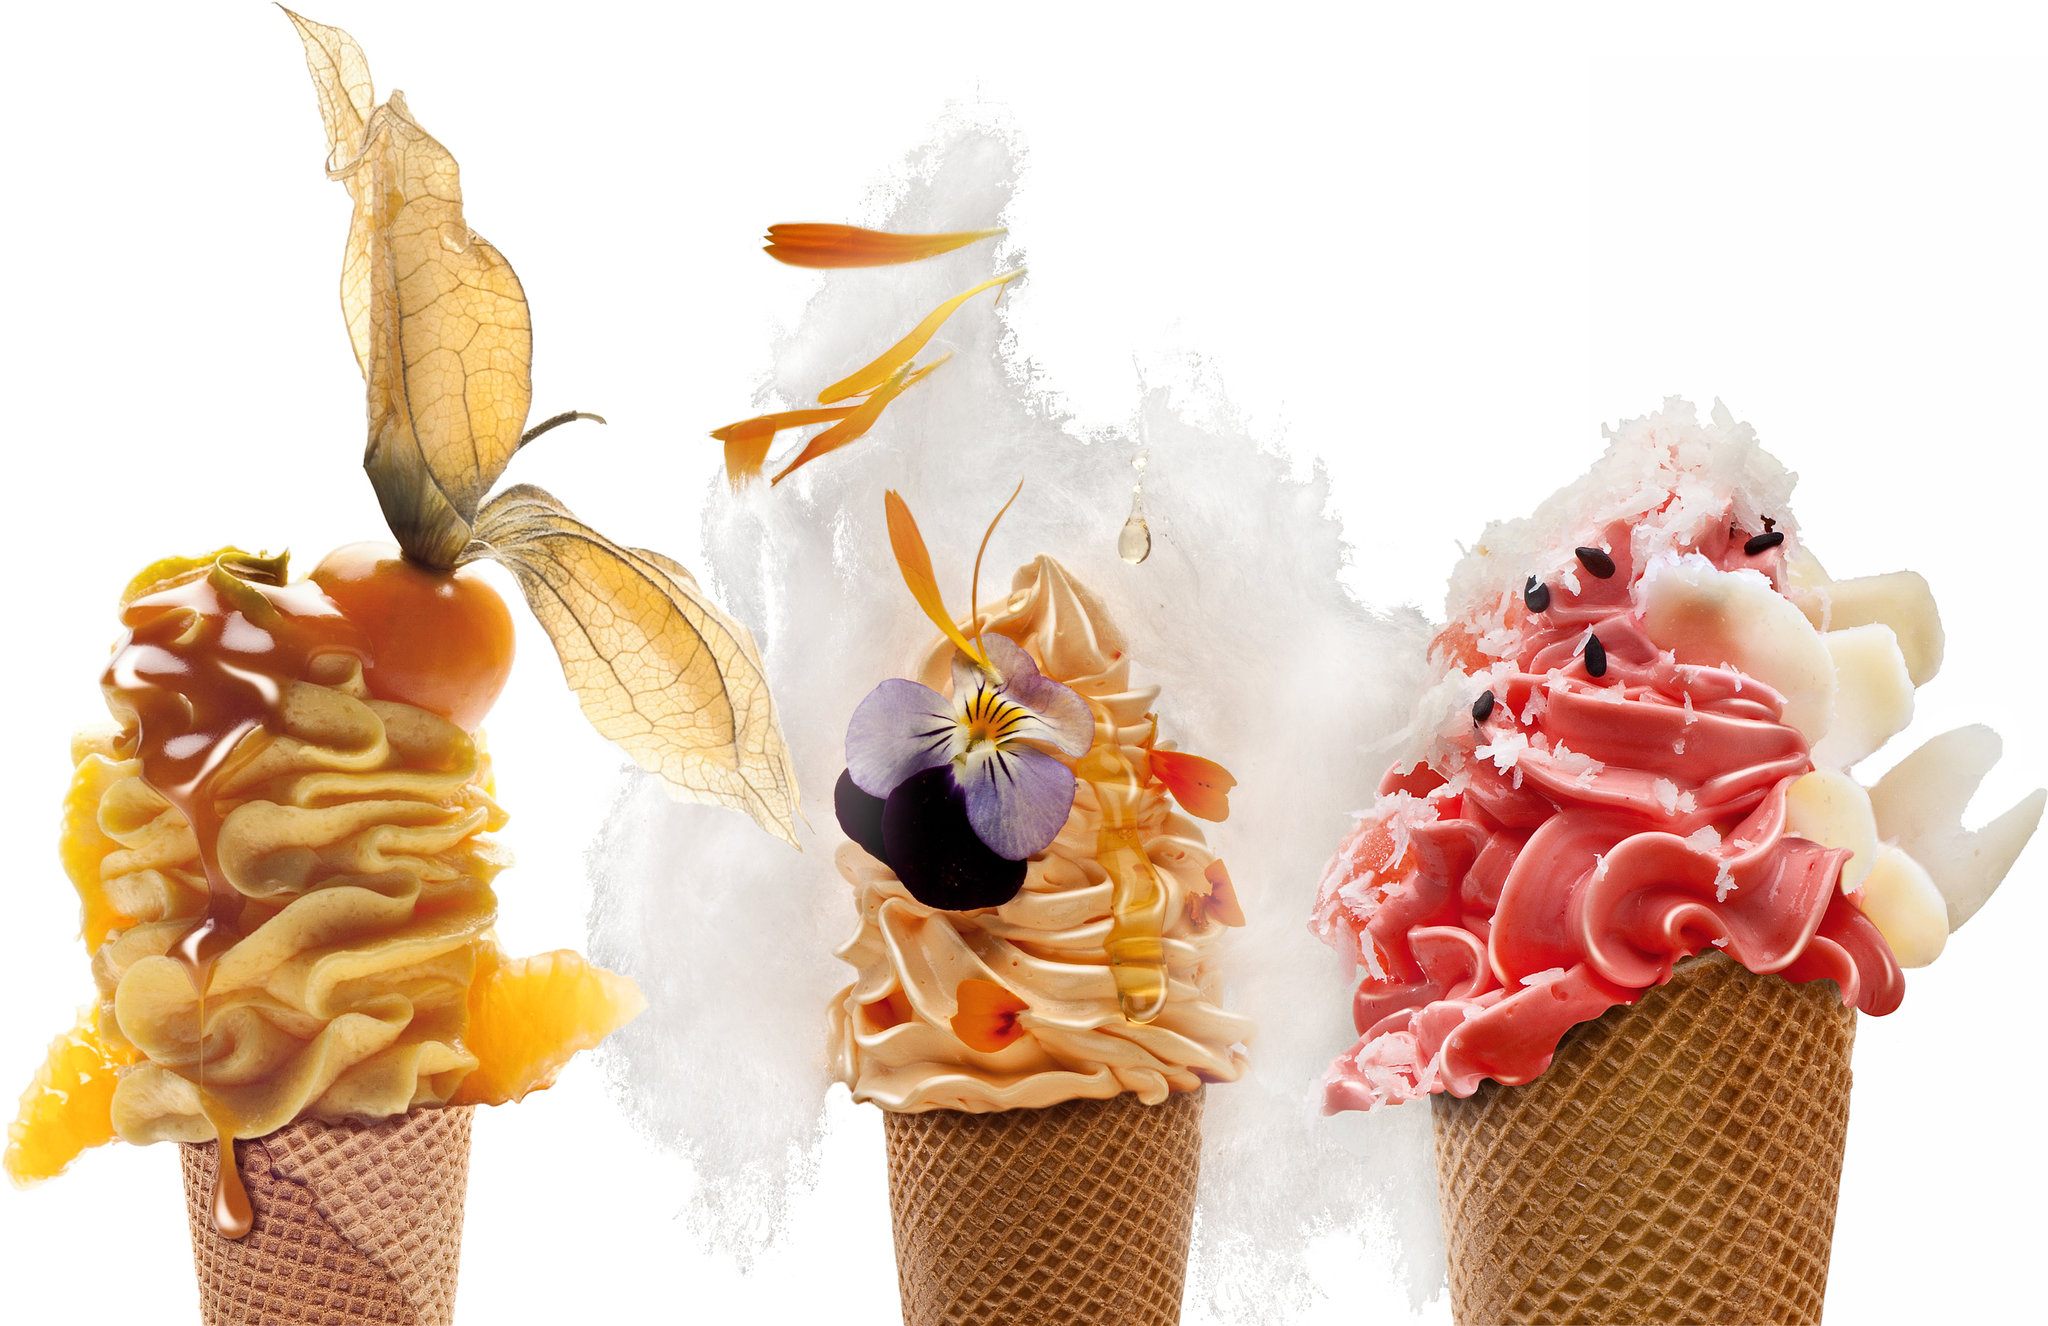 NelsonCarvalheiro_Spain_Best_Ice_Cream_Roncabolesc (3)